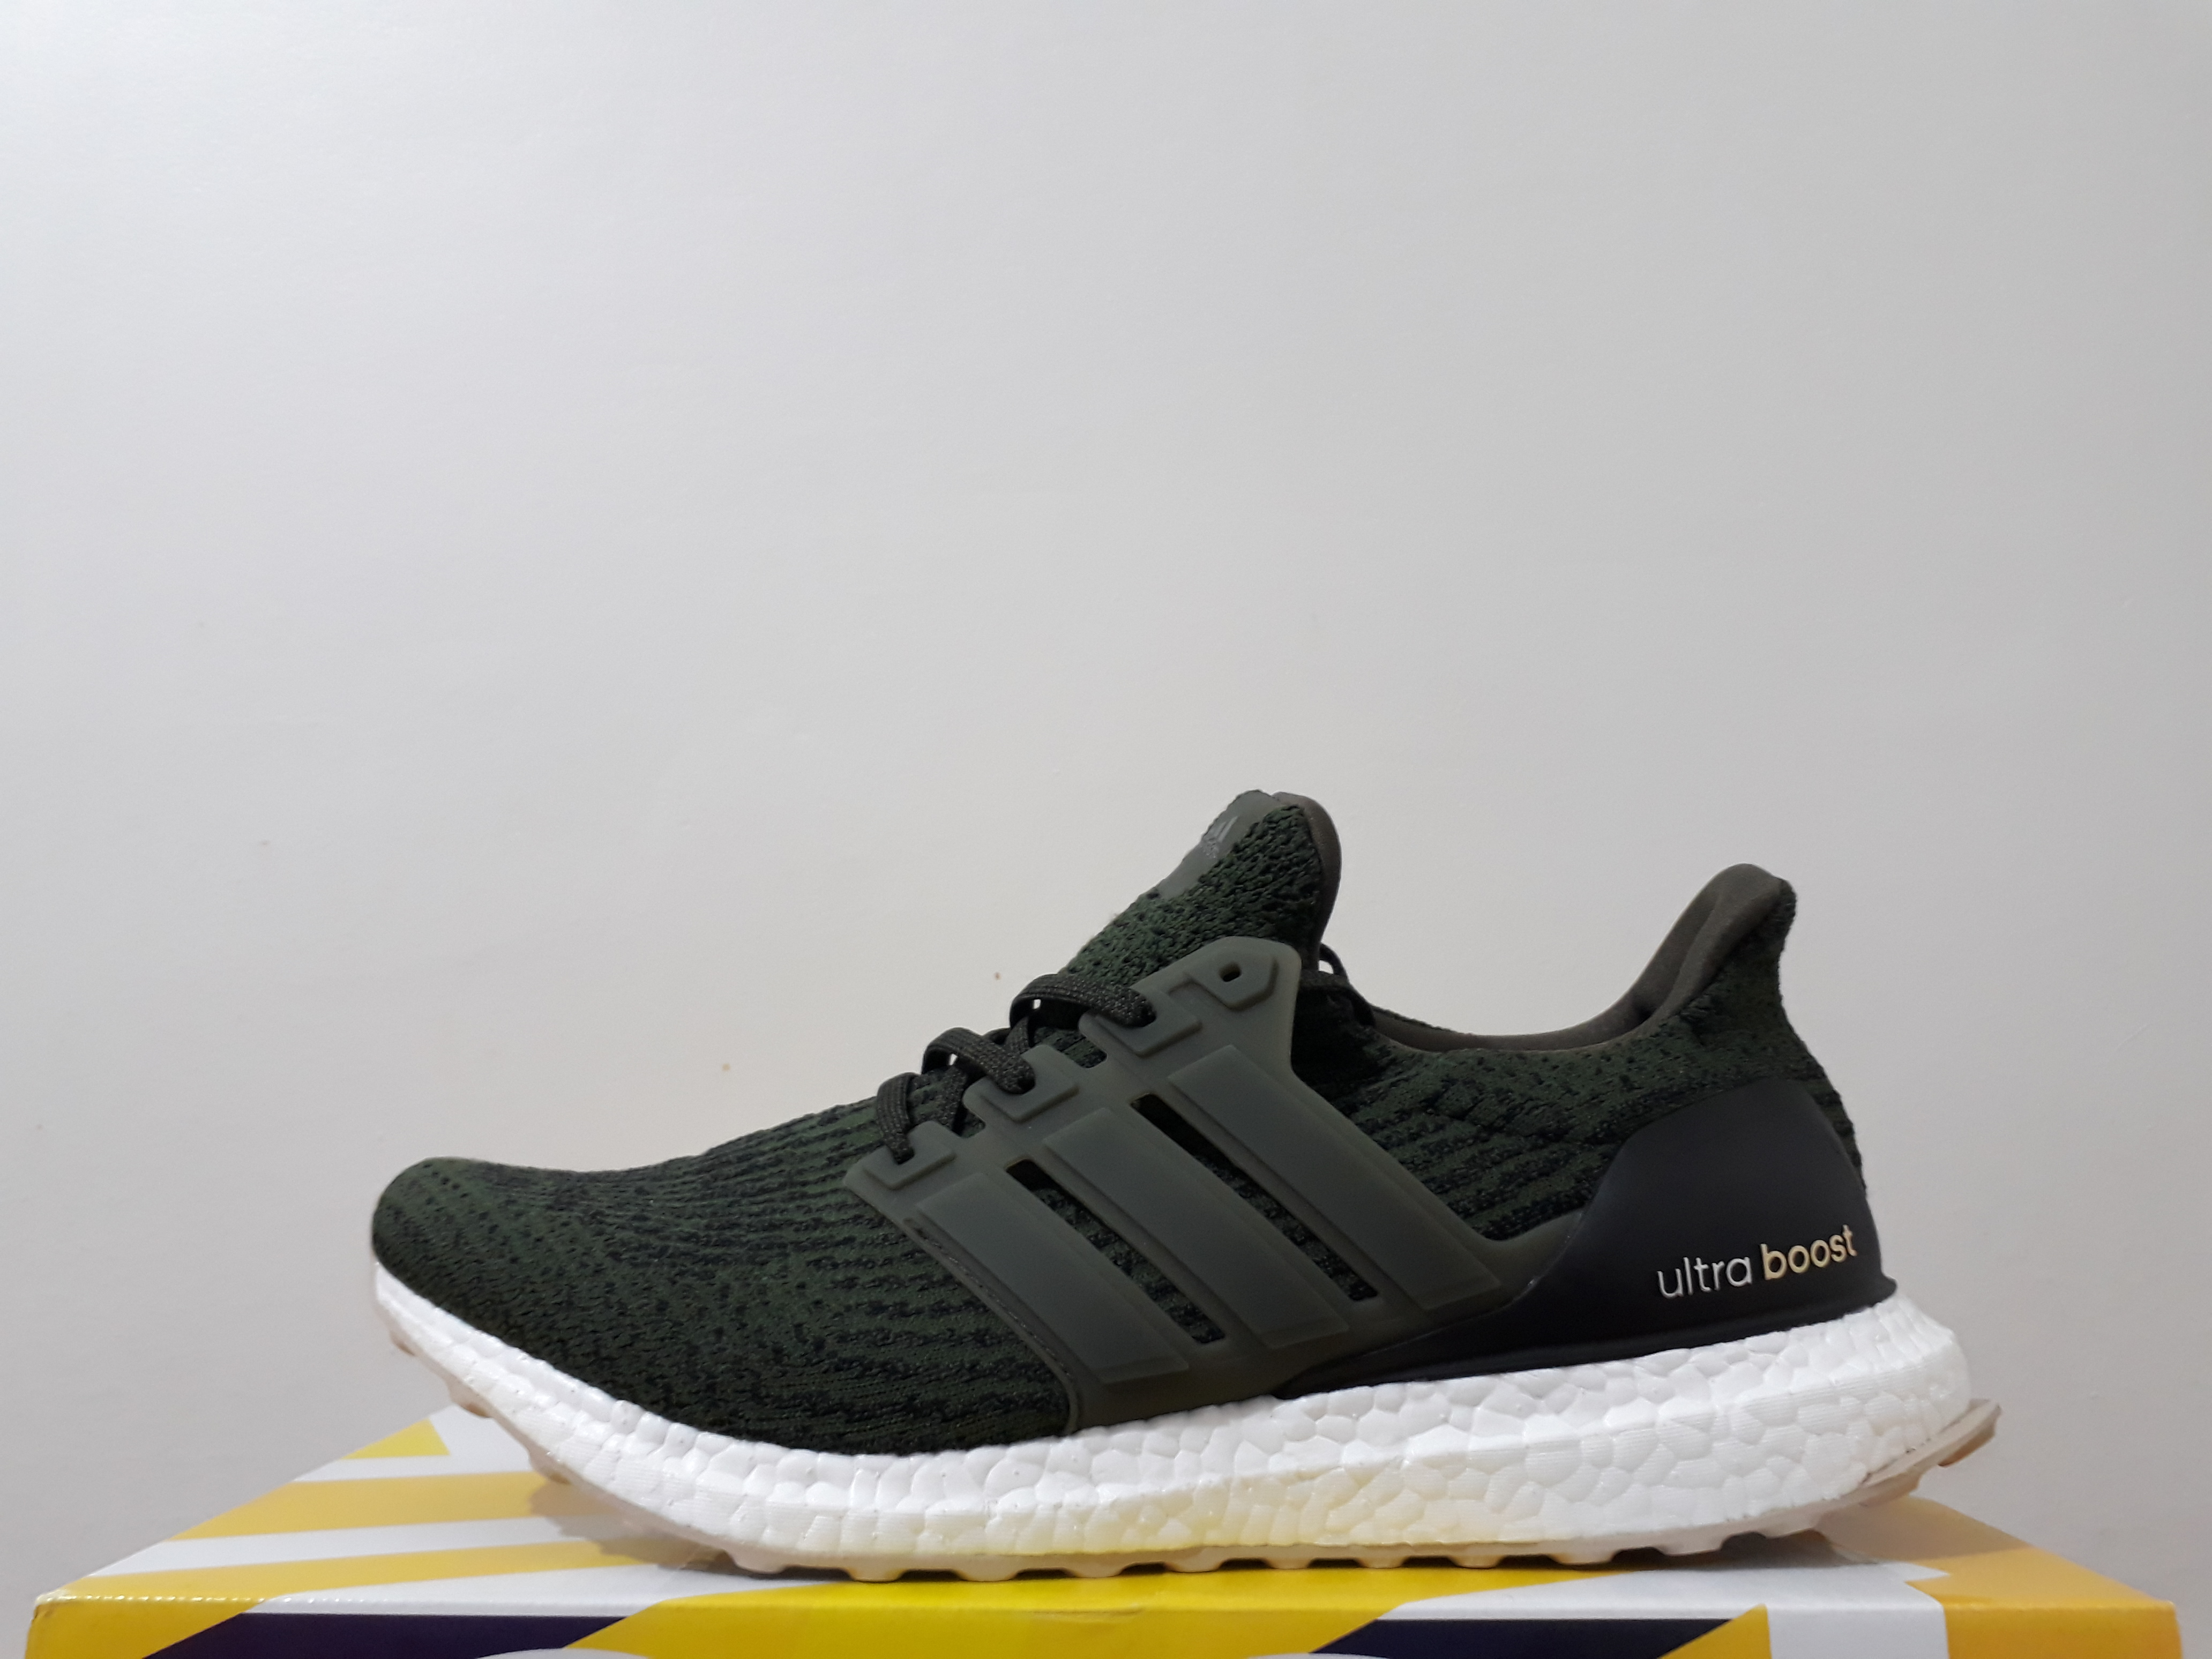 525c63704 Adidas !!!OFFER UP!!!adidas ultra boost 3.0 night cargo (S80637 ...